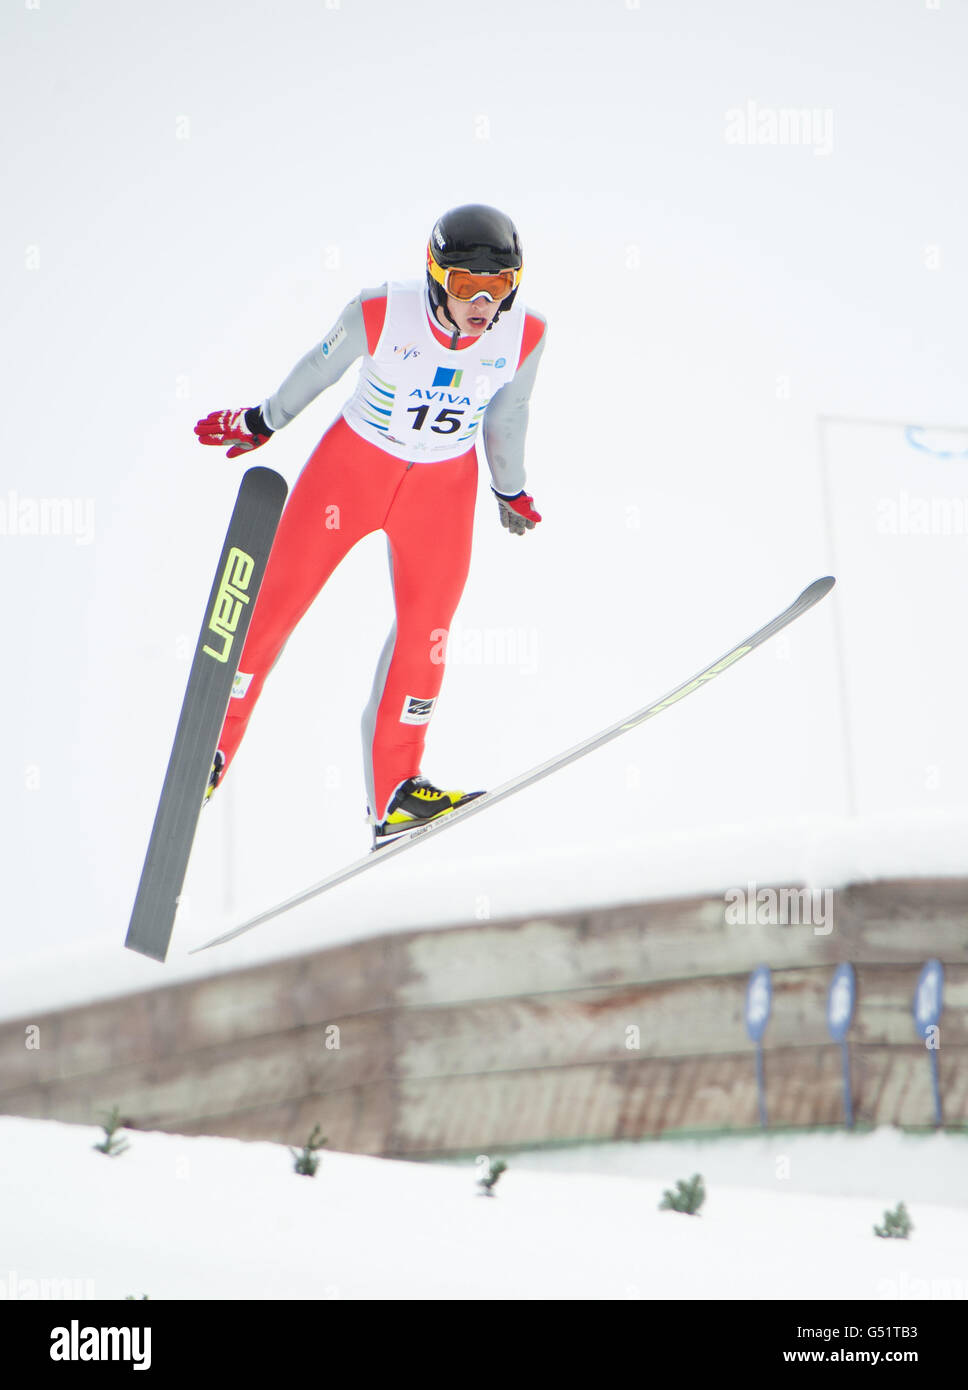 A nordic ski jumper in mid air during the FIS Cup of ski jumping at the Whistler Olympic Park.  Whistler BC, Canada. - Stock Image